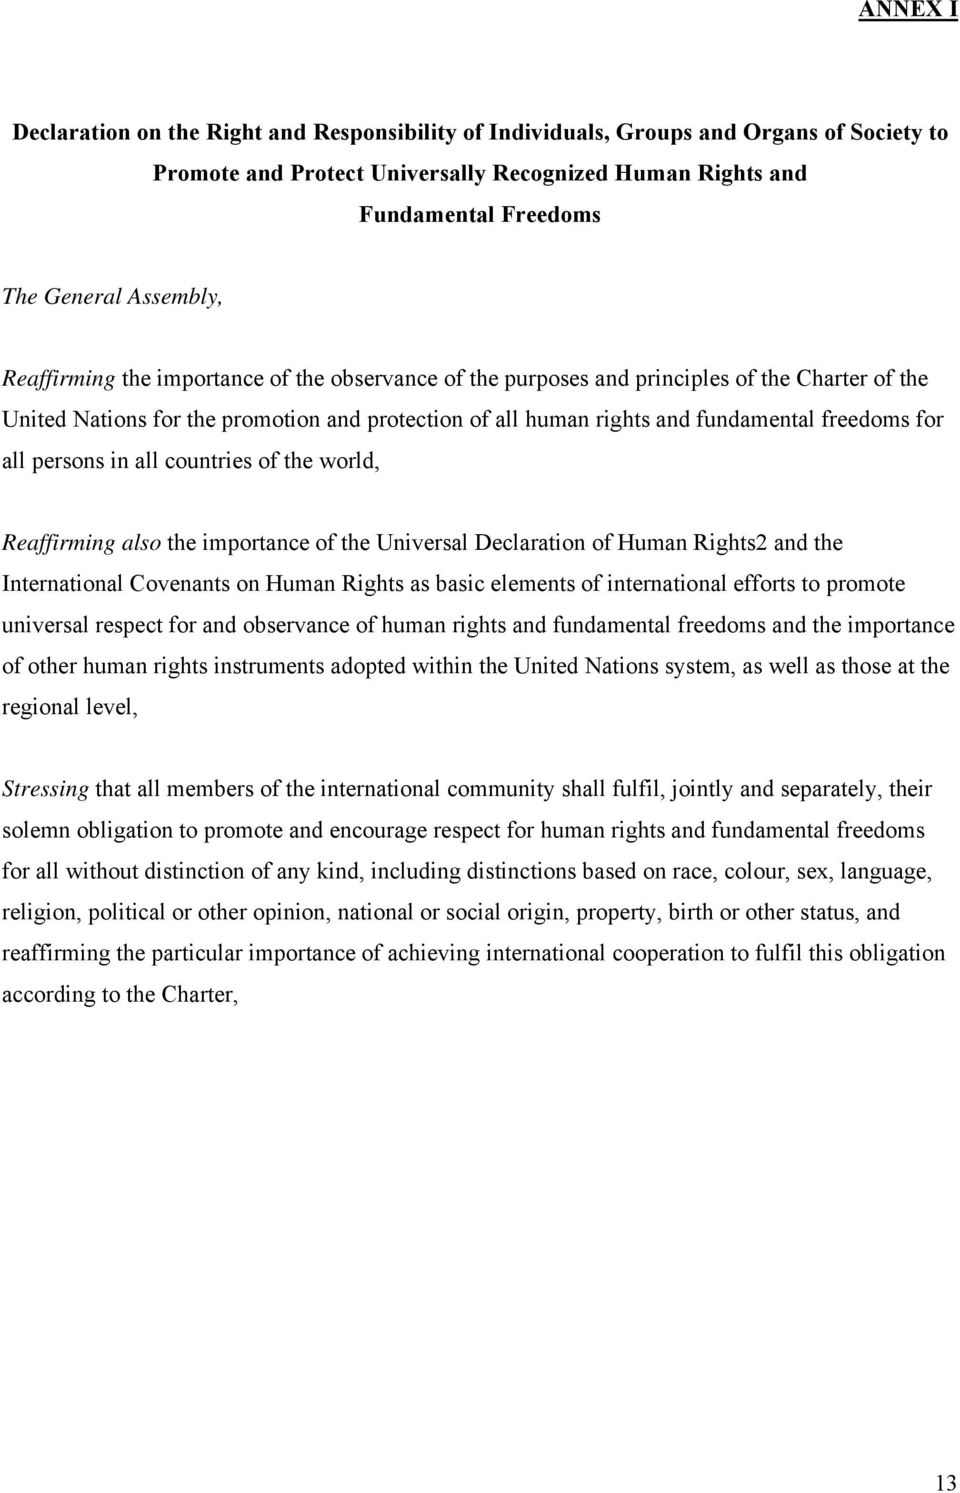 freedoms for all persons in all countries of the world, Reaffirming also the importance of the Universal Declaration of Human Rights2 and the International Covenants on Human Rights as basic elements